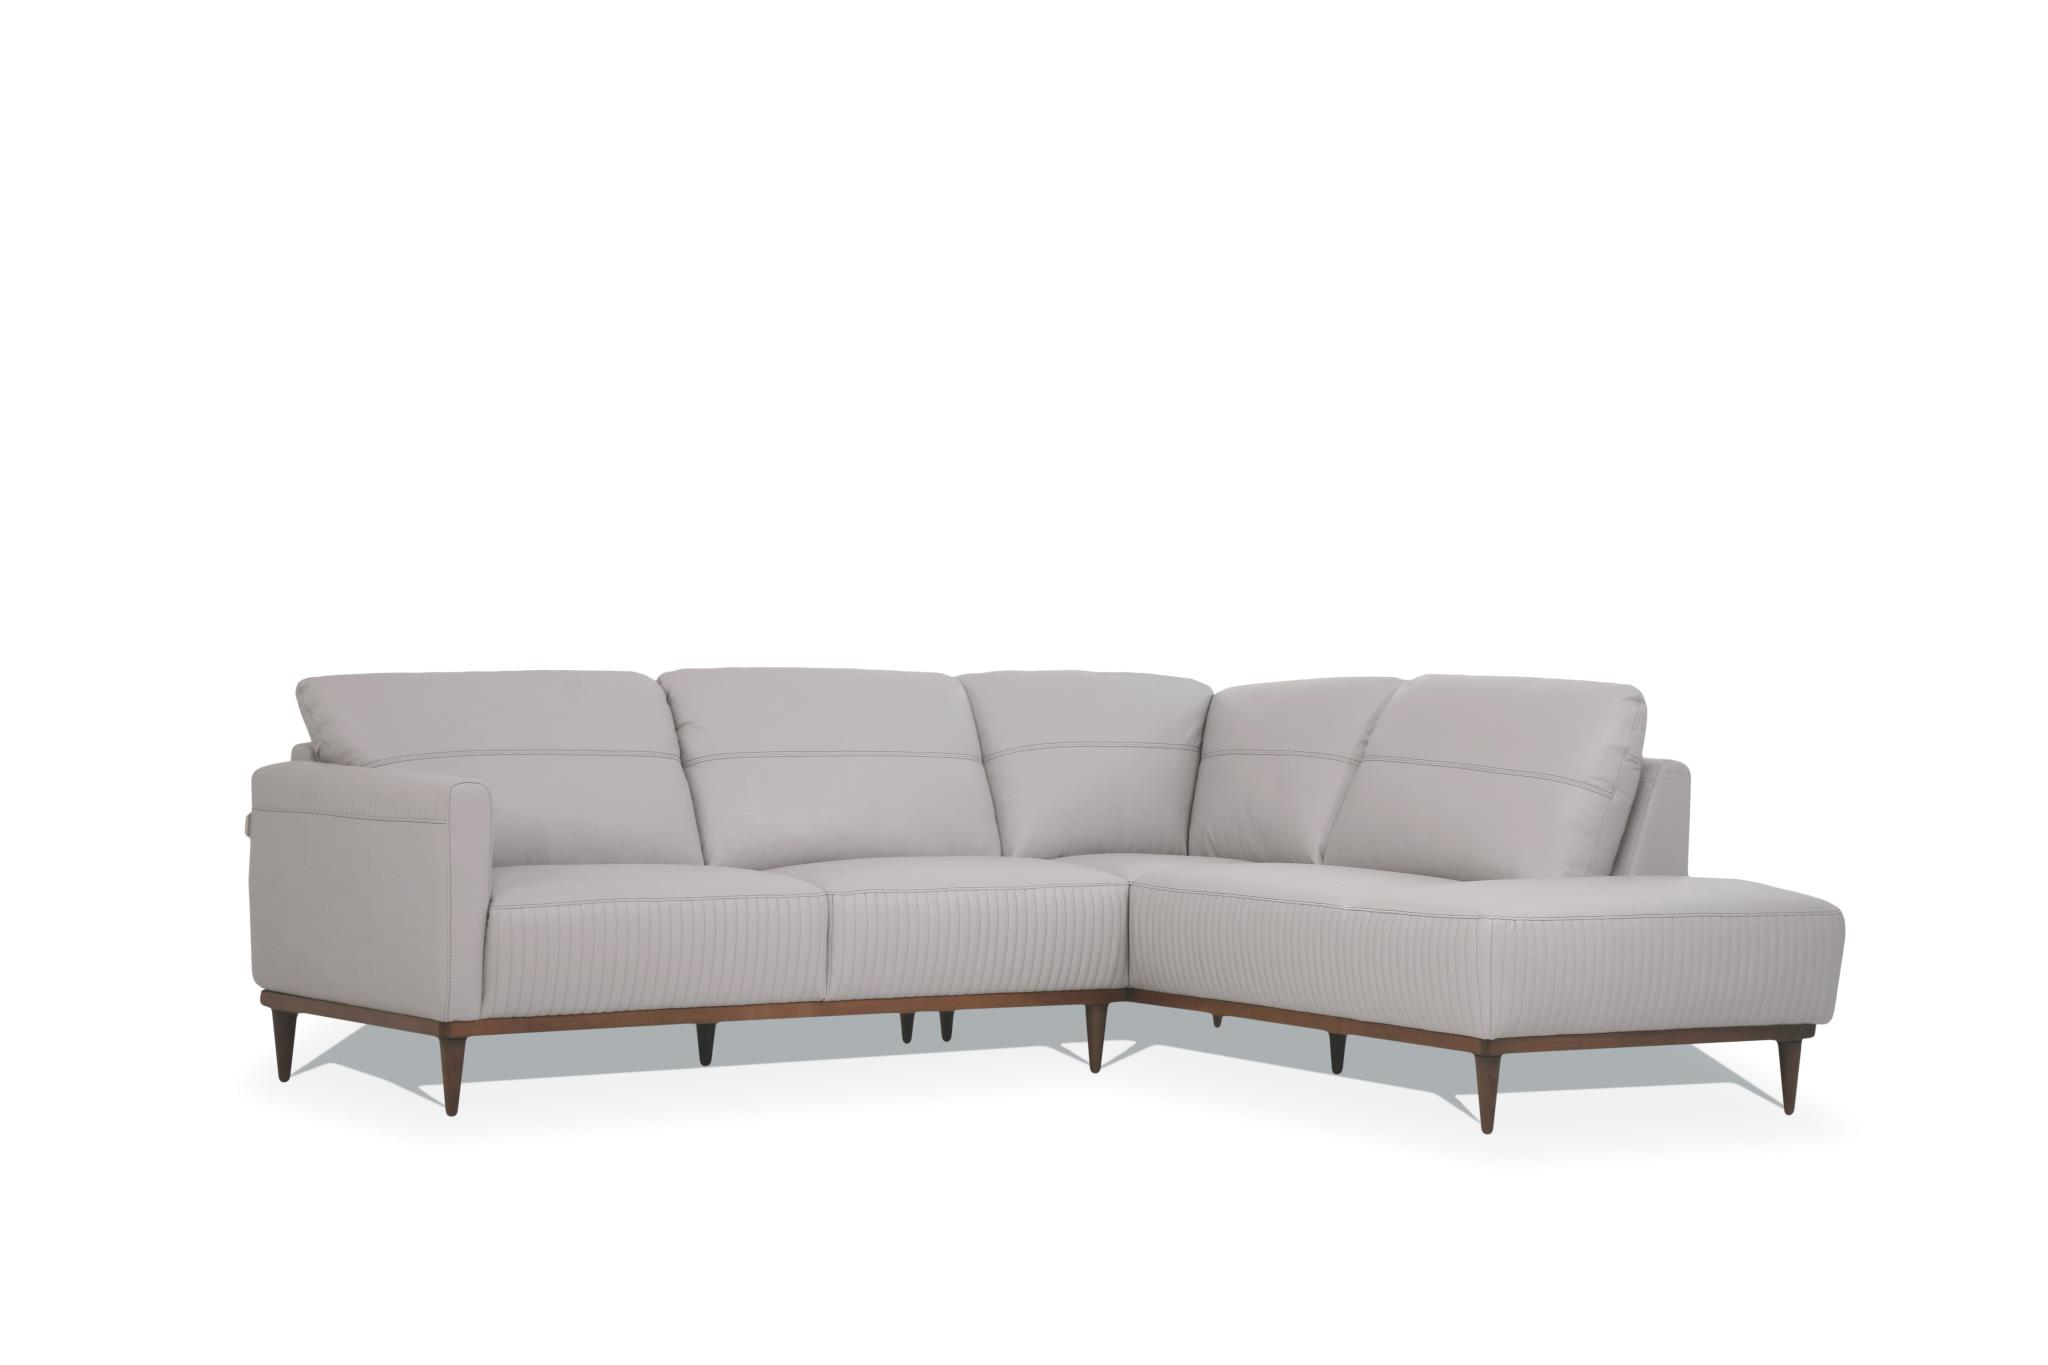 Pearl Gray Sectional Sofa w/ Right Facing Chaise Angle